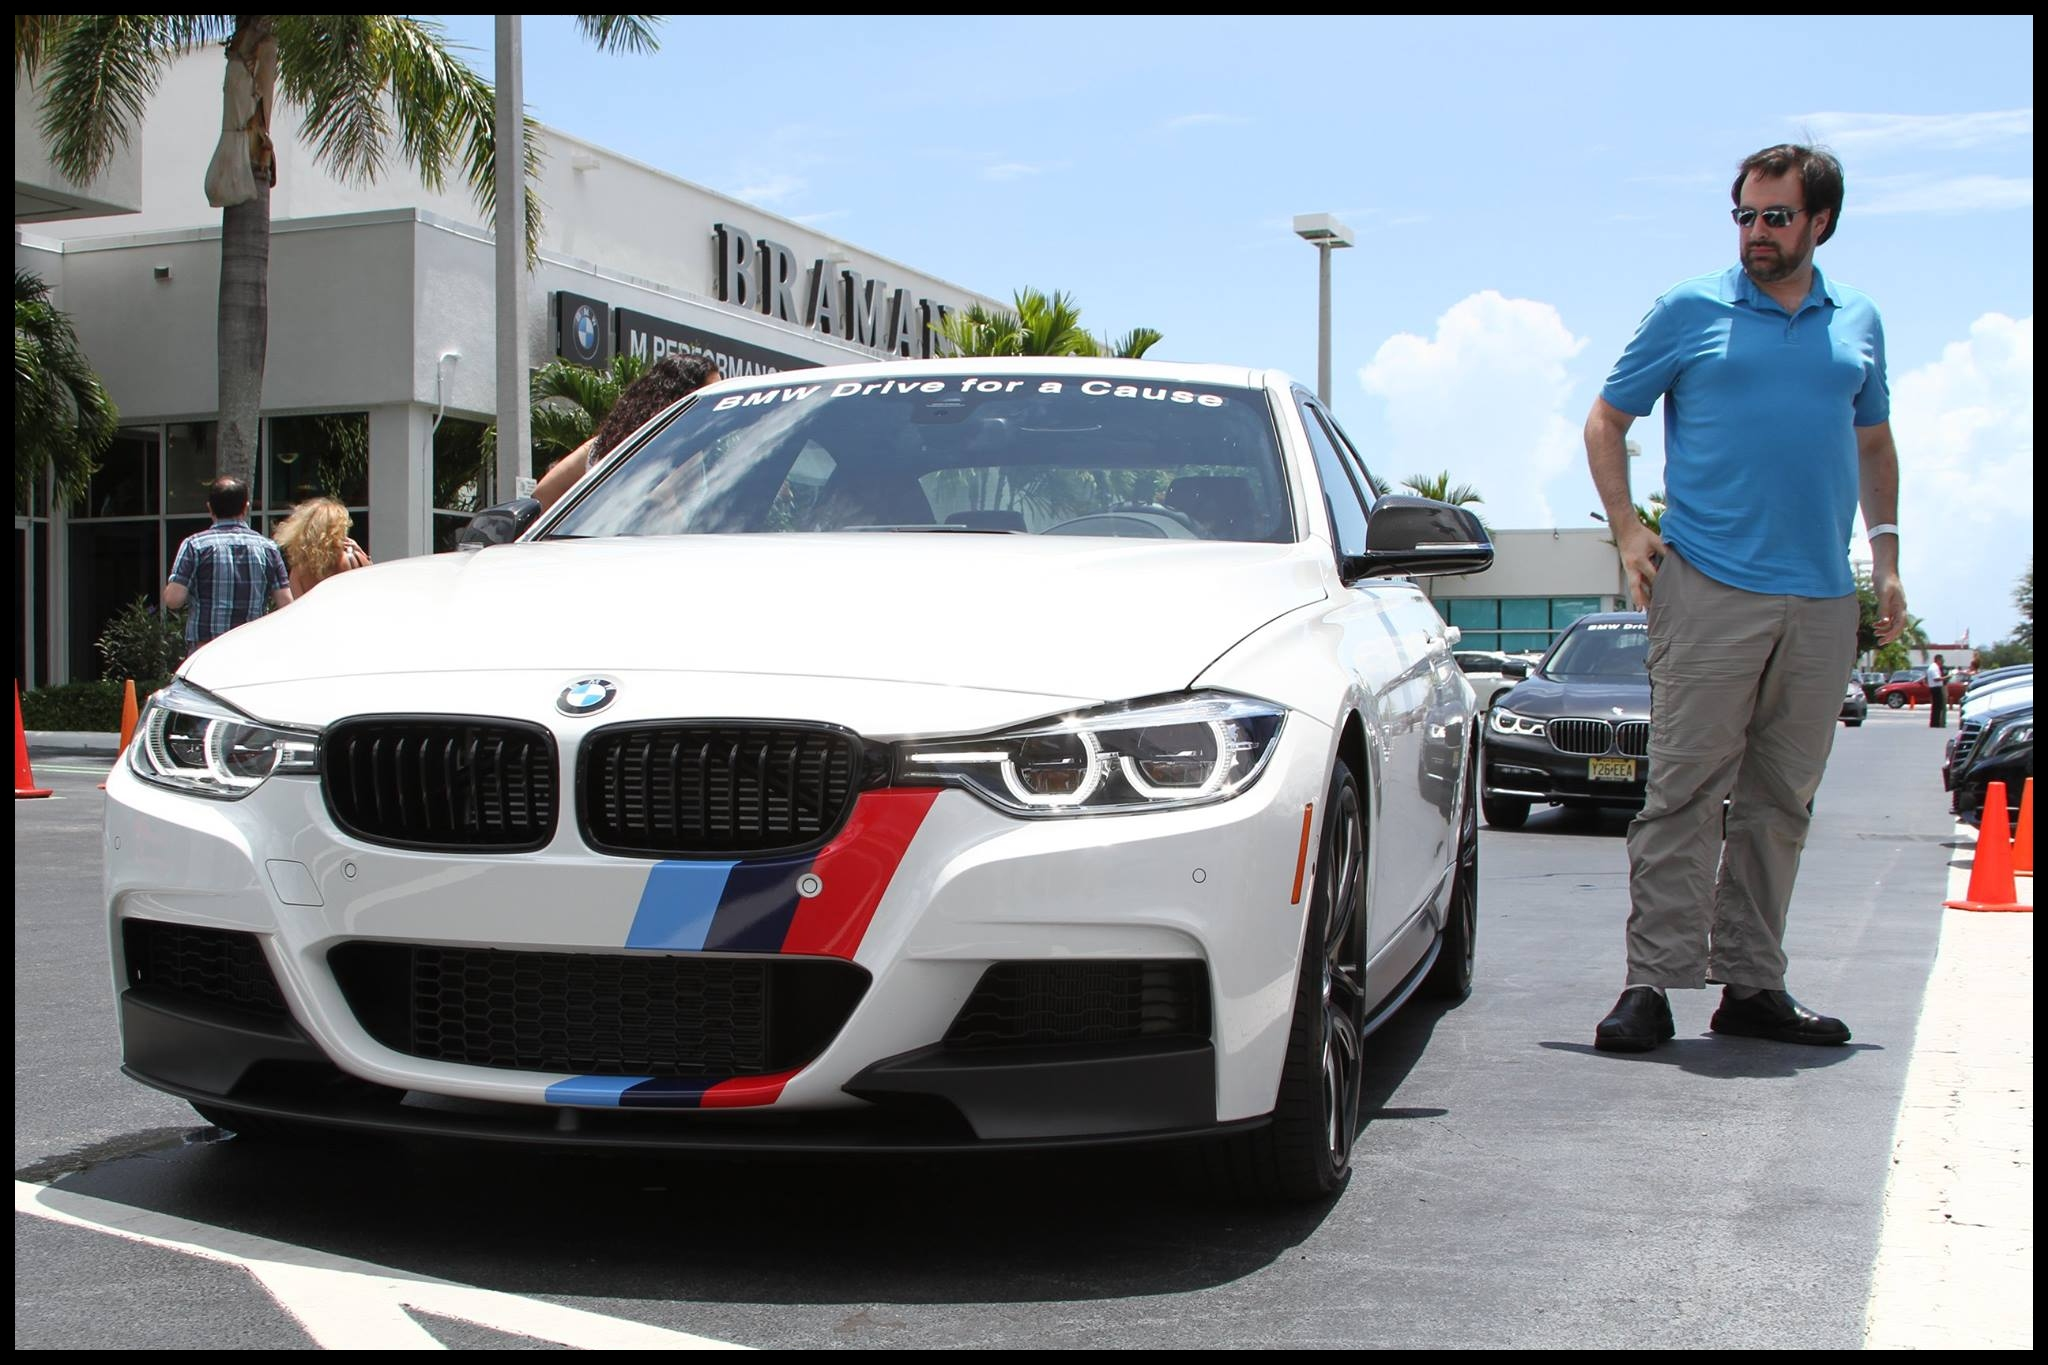 Club Braman and Braman BMW Drive for a Cause Image Gallery